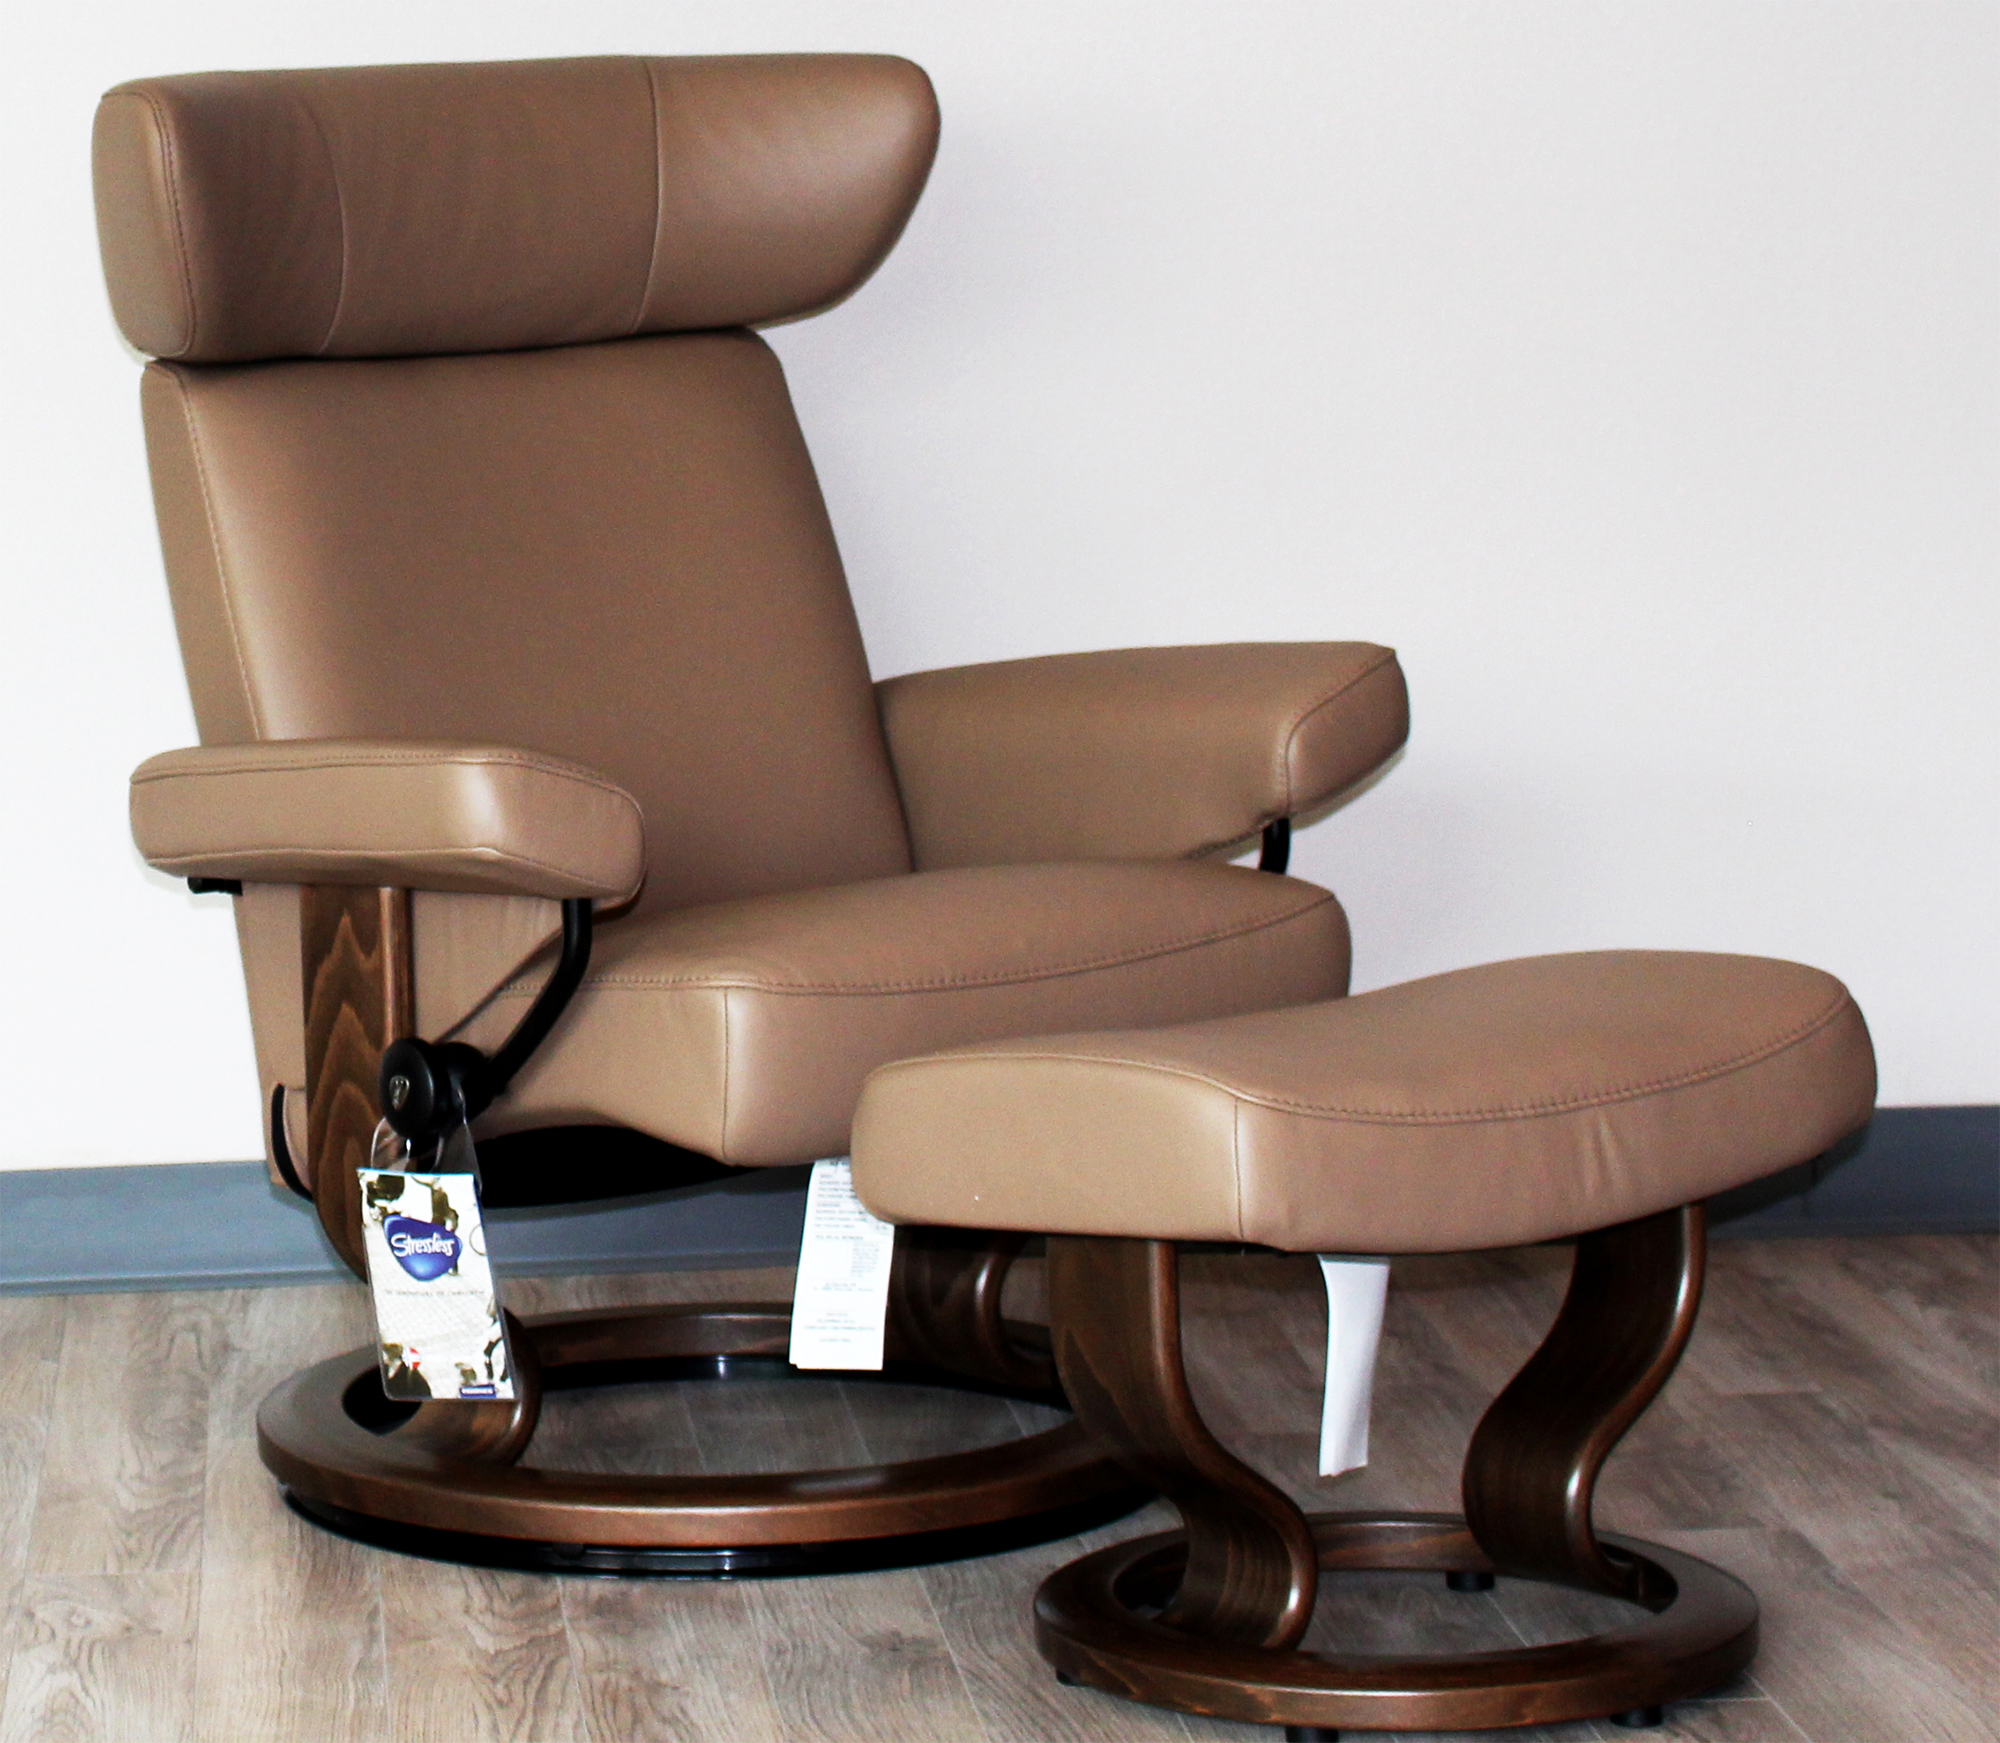 Stressless Viva Paloma Funghi Leather Recliner Chair And